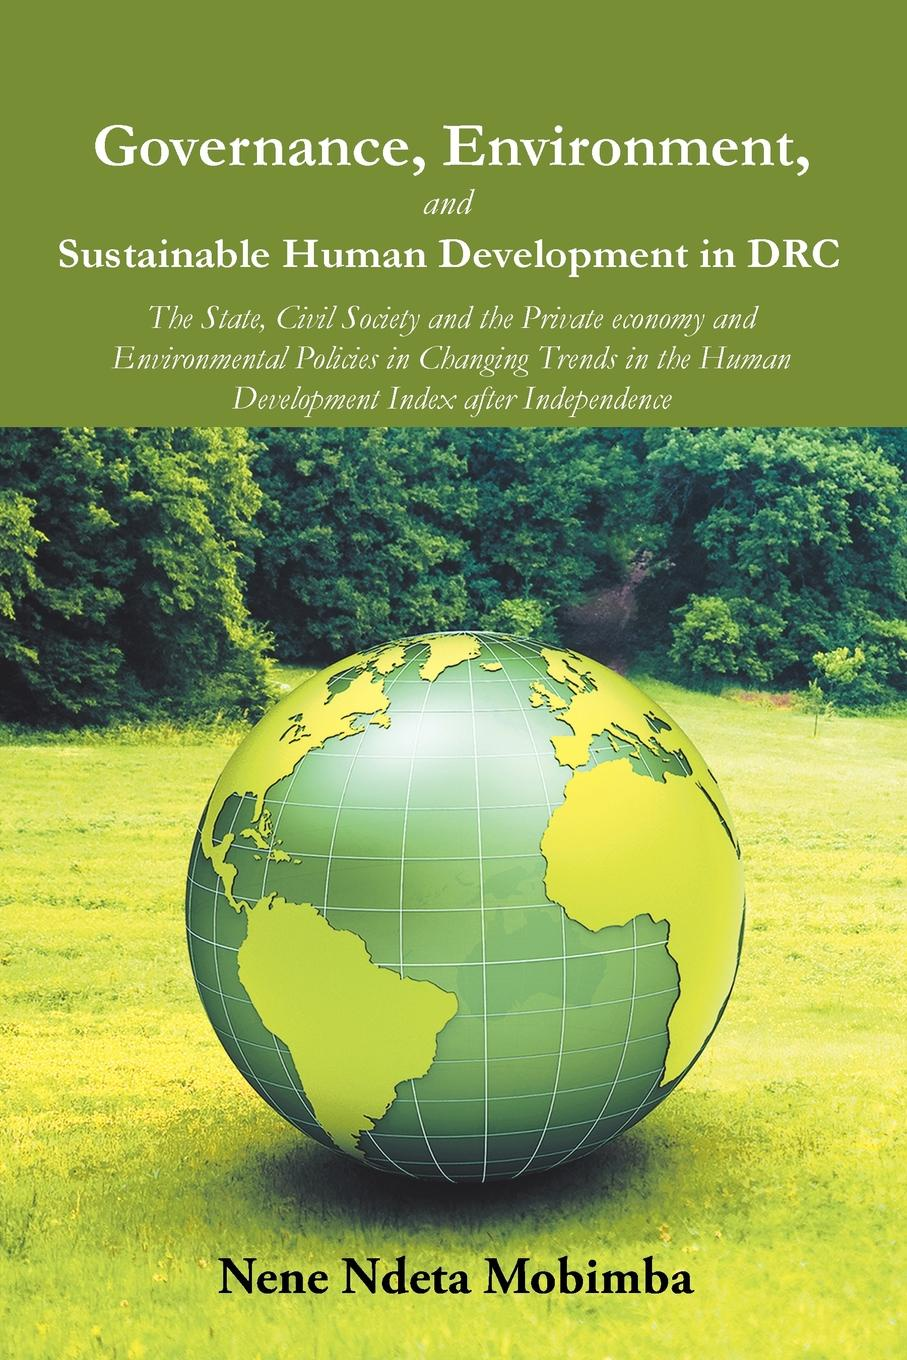 Nene Ndeta Mobimba Governance, Environment, and Sustainable Human Development in DRC. The State, Civil Society the Private economy Environmental Policies Changing Trends Index after Independence